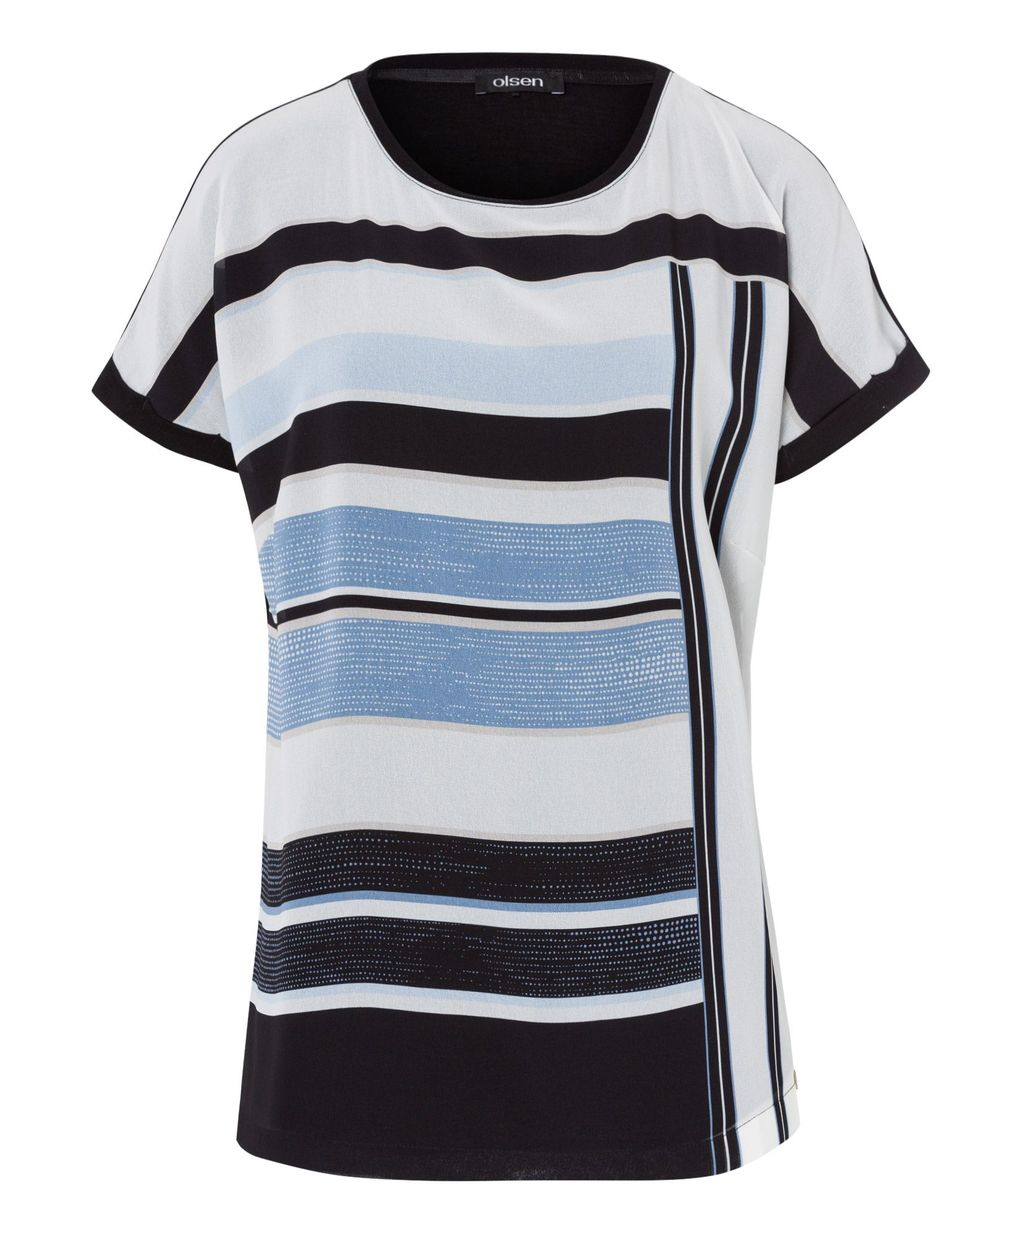 Stripe Top, Light Blue - pattern: striped; style: t-shirt; secondary colour: white; predominant colour: pale blue; occasions: casual; length: standard; fibres: cotton - stretch; fit: straight cut; neckline: crew; sleeve length: short sleeve; sleeve style: standard; pattern type: fabric; pattern size: standard; texture group: jersey - stretchy/drapey; multicoloured: multicoloured; season: s/s 2016; wardrobe: highlight